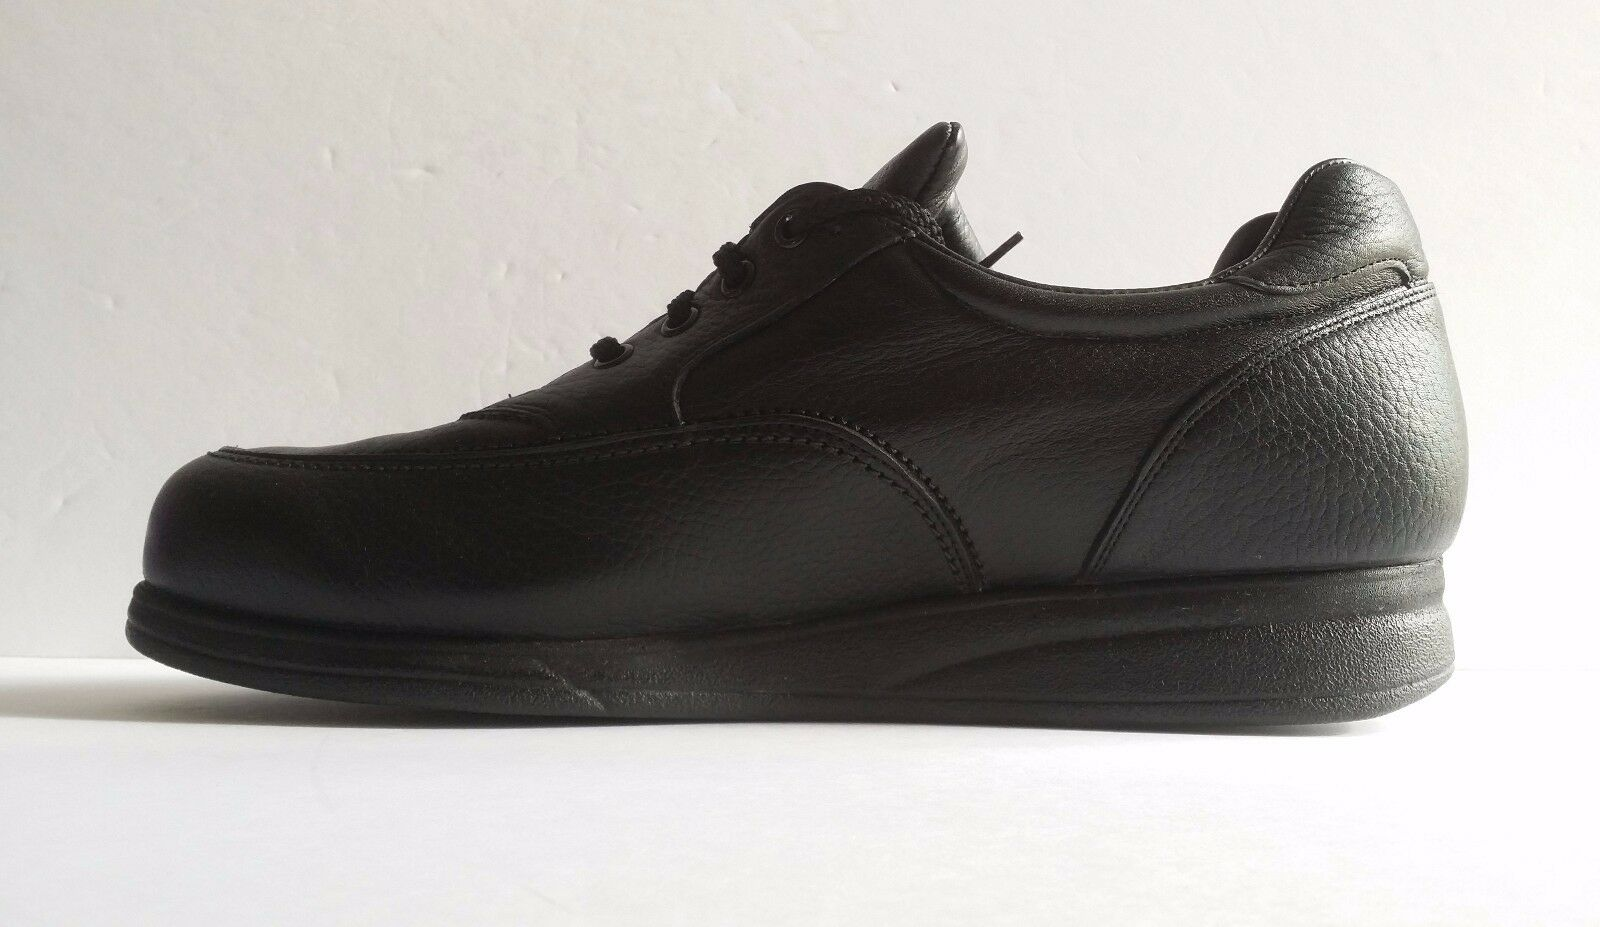 Amputee PW Minor Black Leather Extra Depth Orthopedic Right Shoe Size 11.5 D